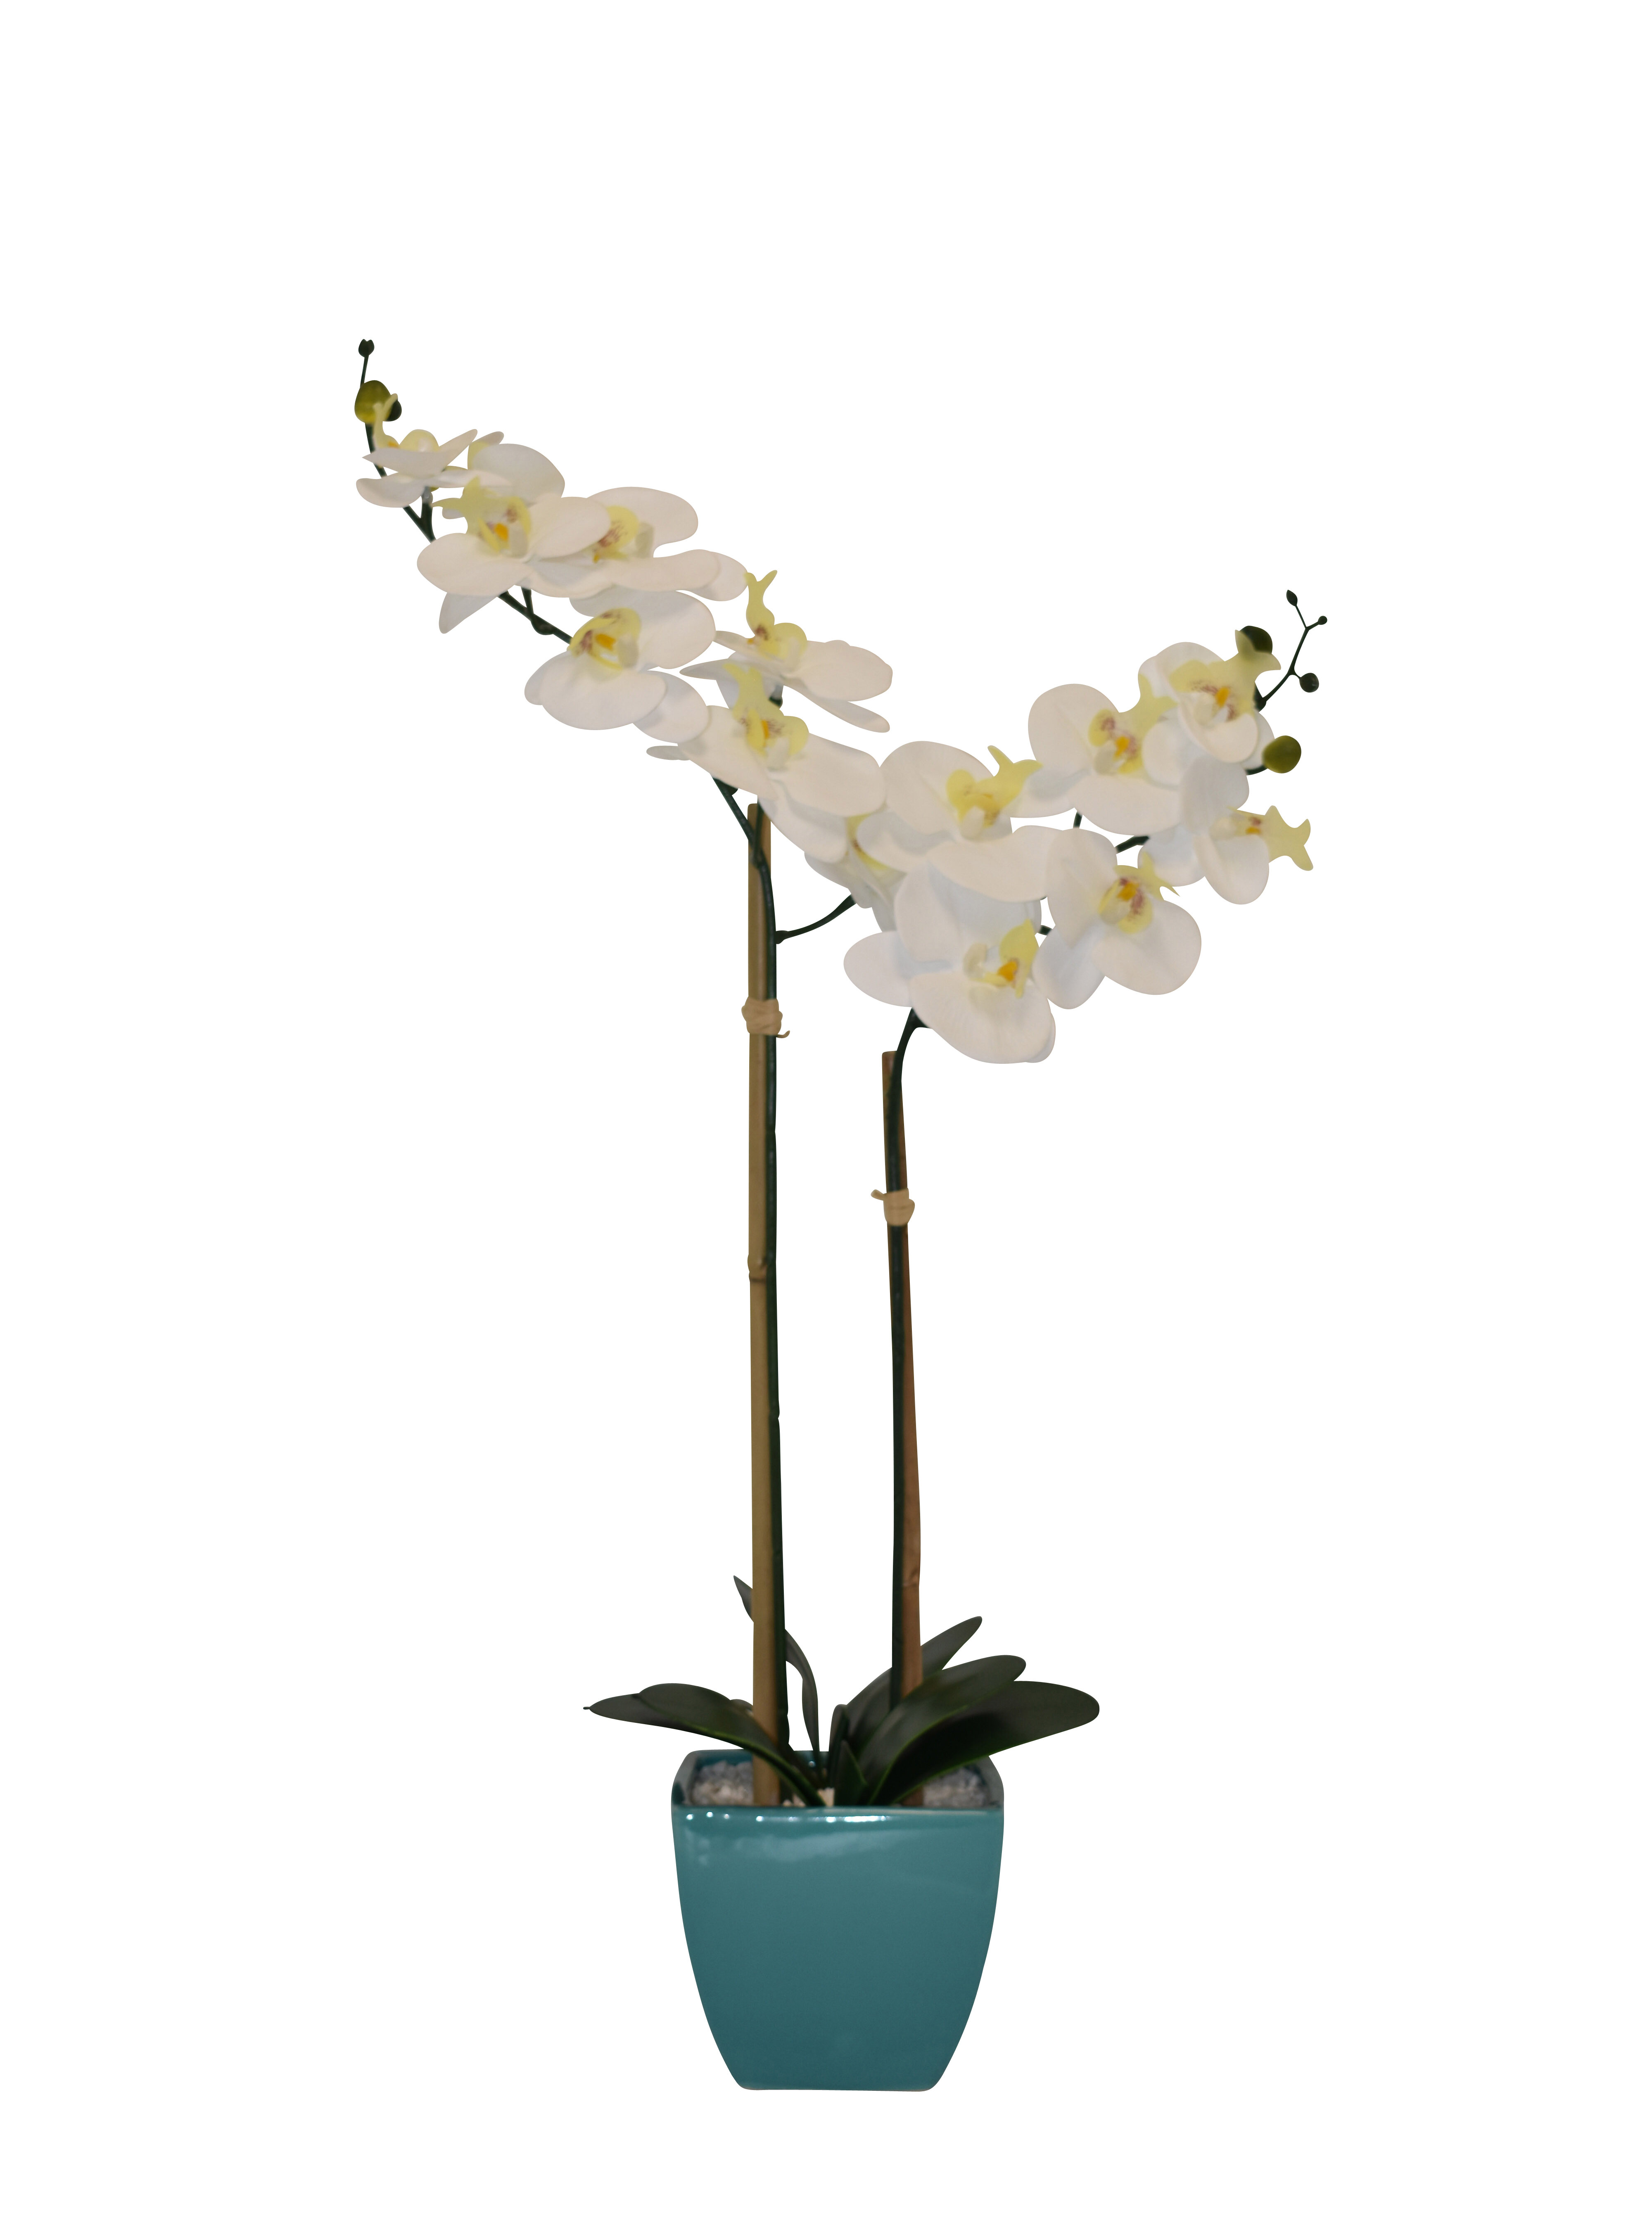 Greenery in Ceramic Vase. Artificial Silk Flowers Realistic Ivory Orchid Flower